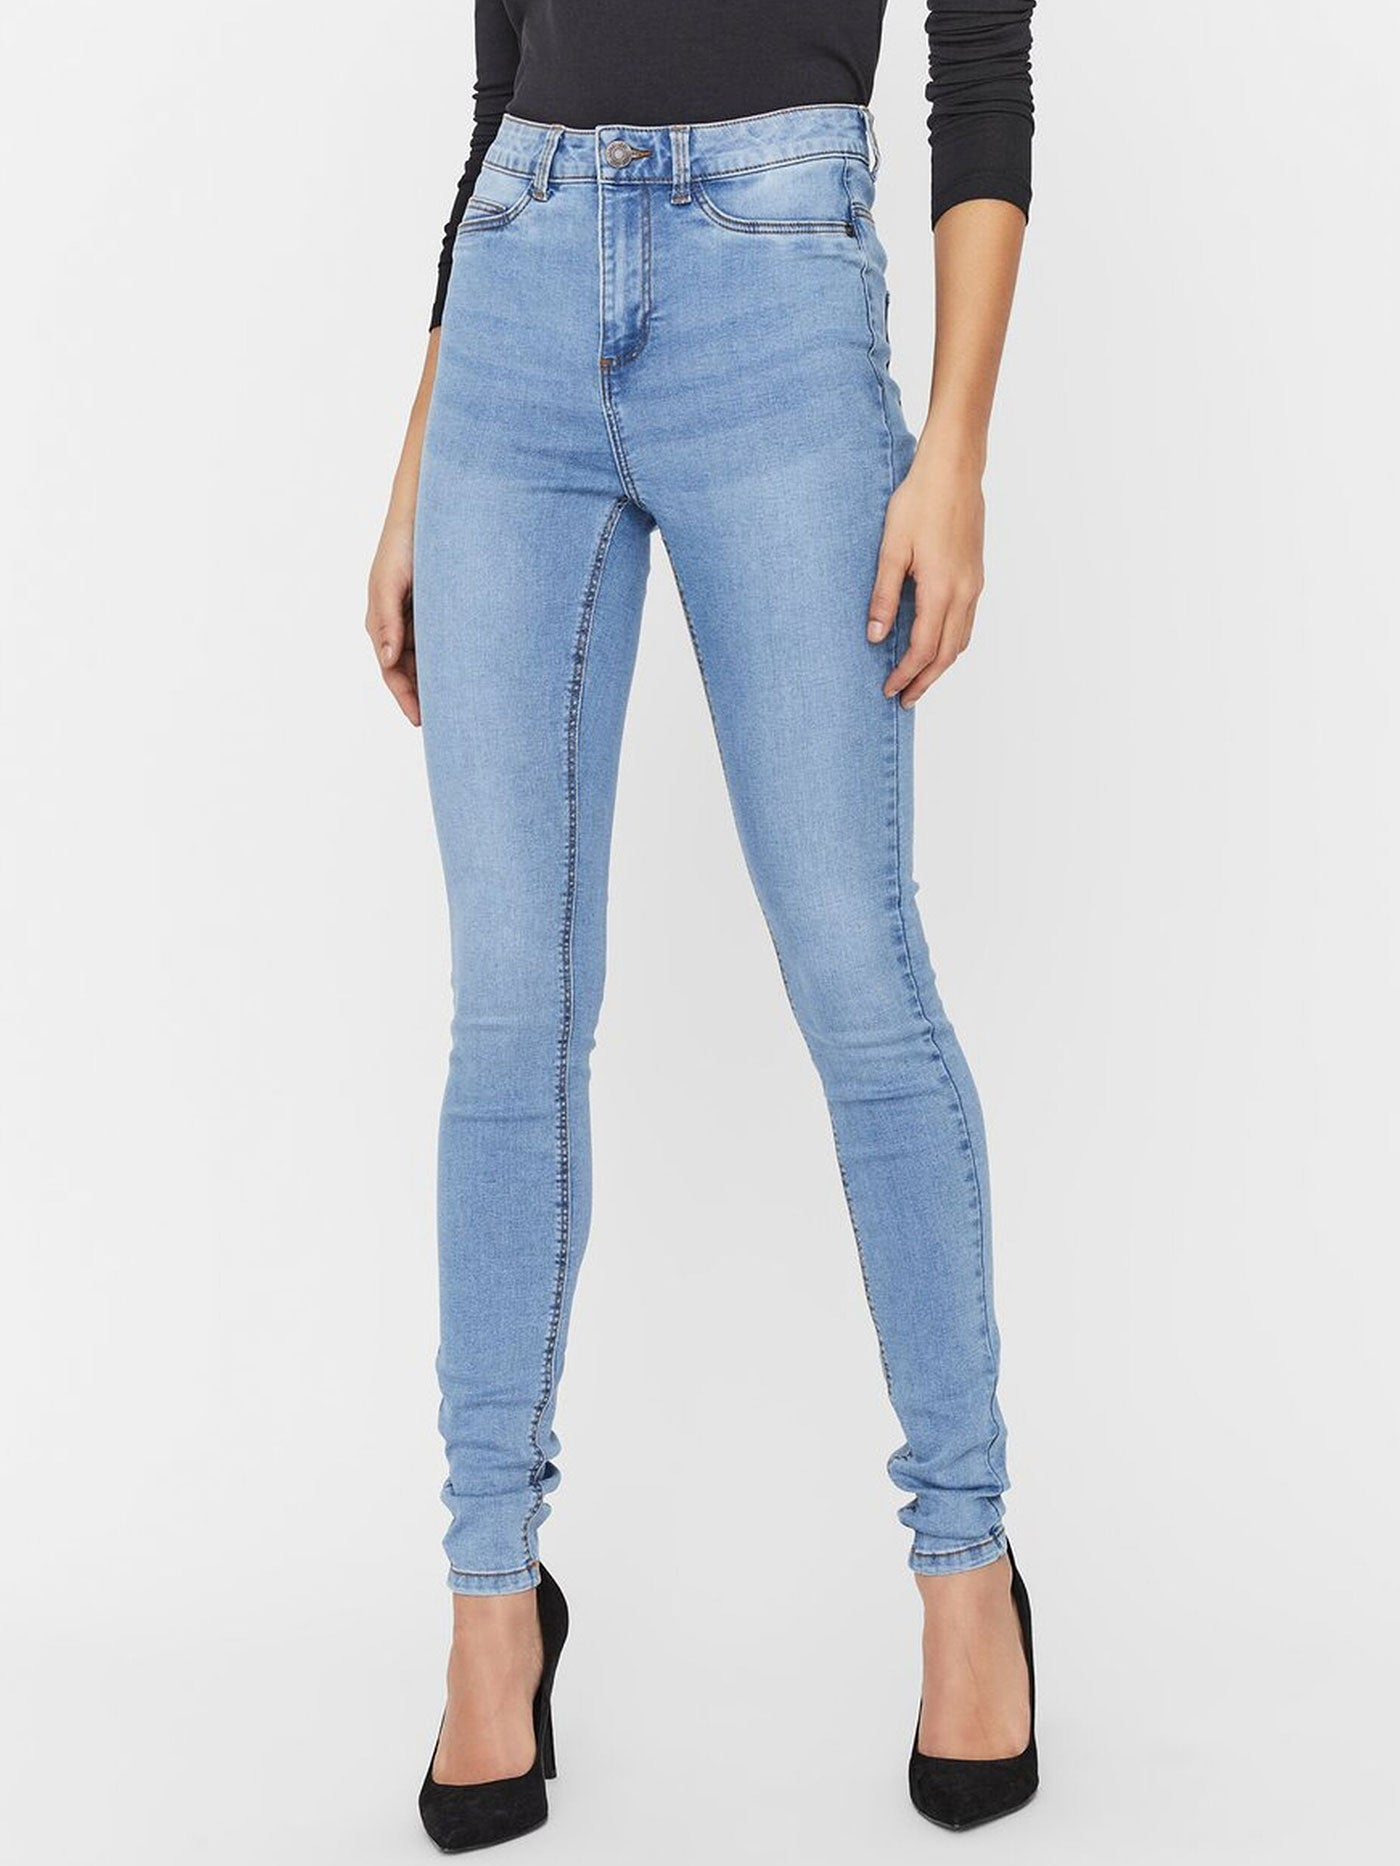 Callie Skinny Fit Jeans